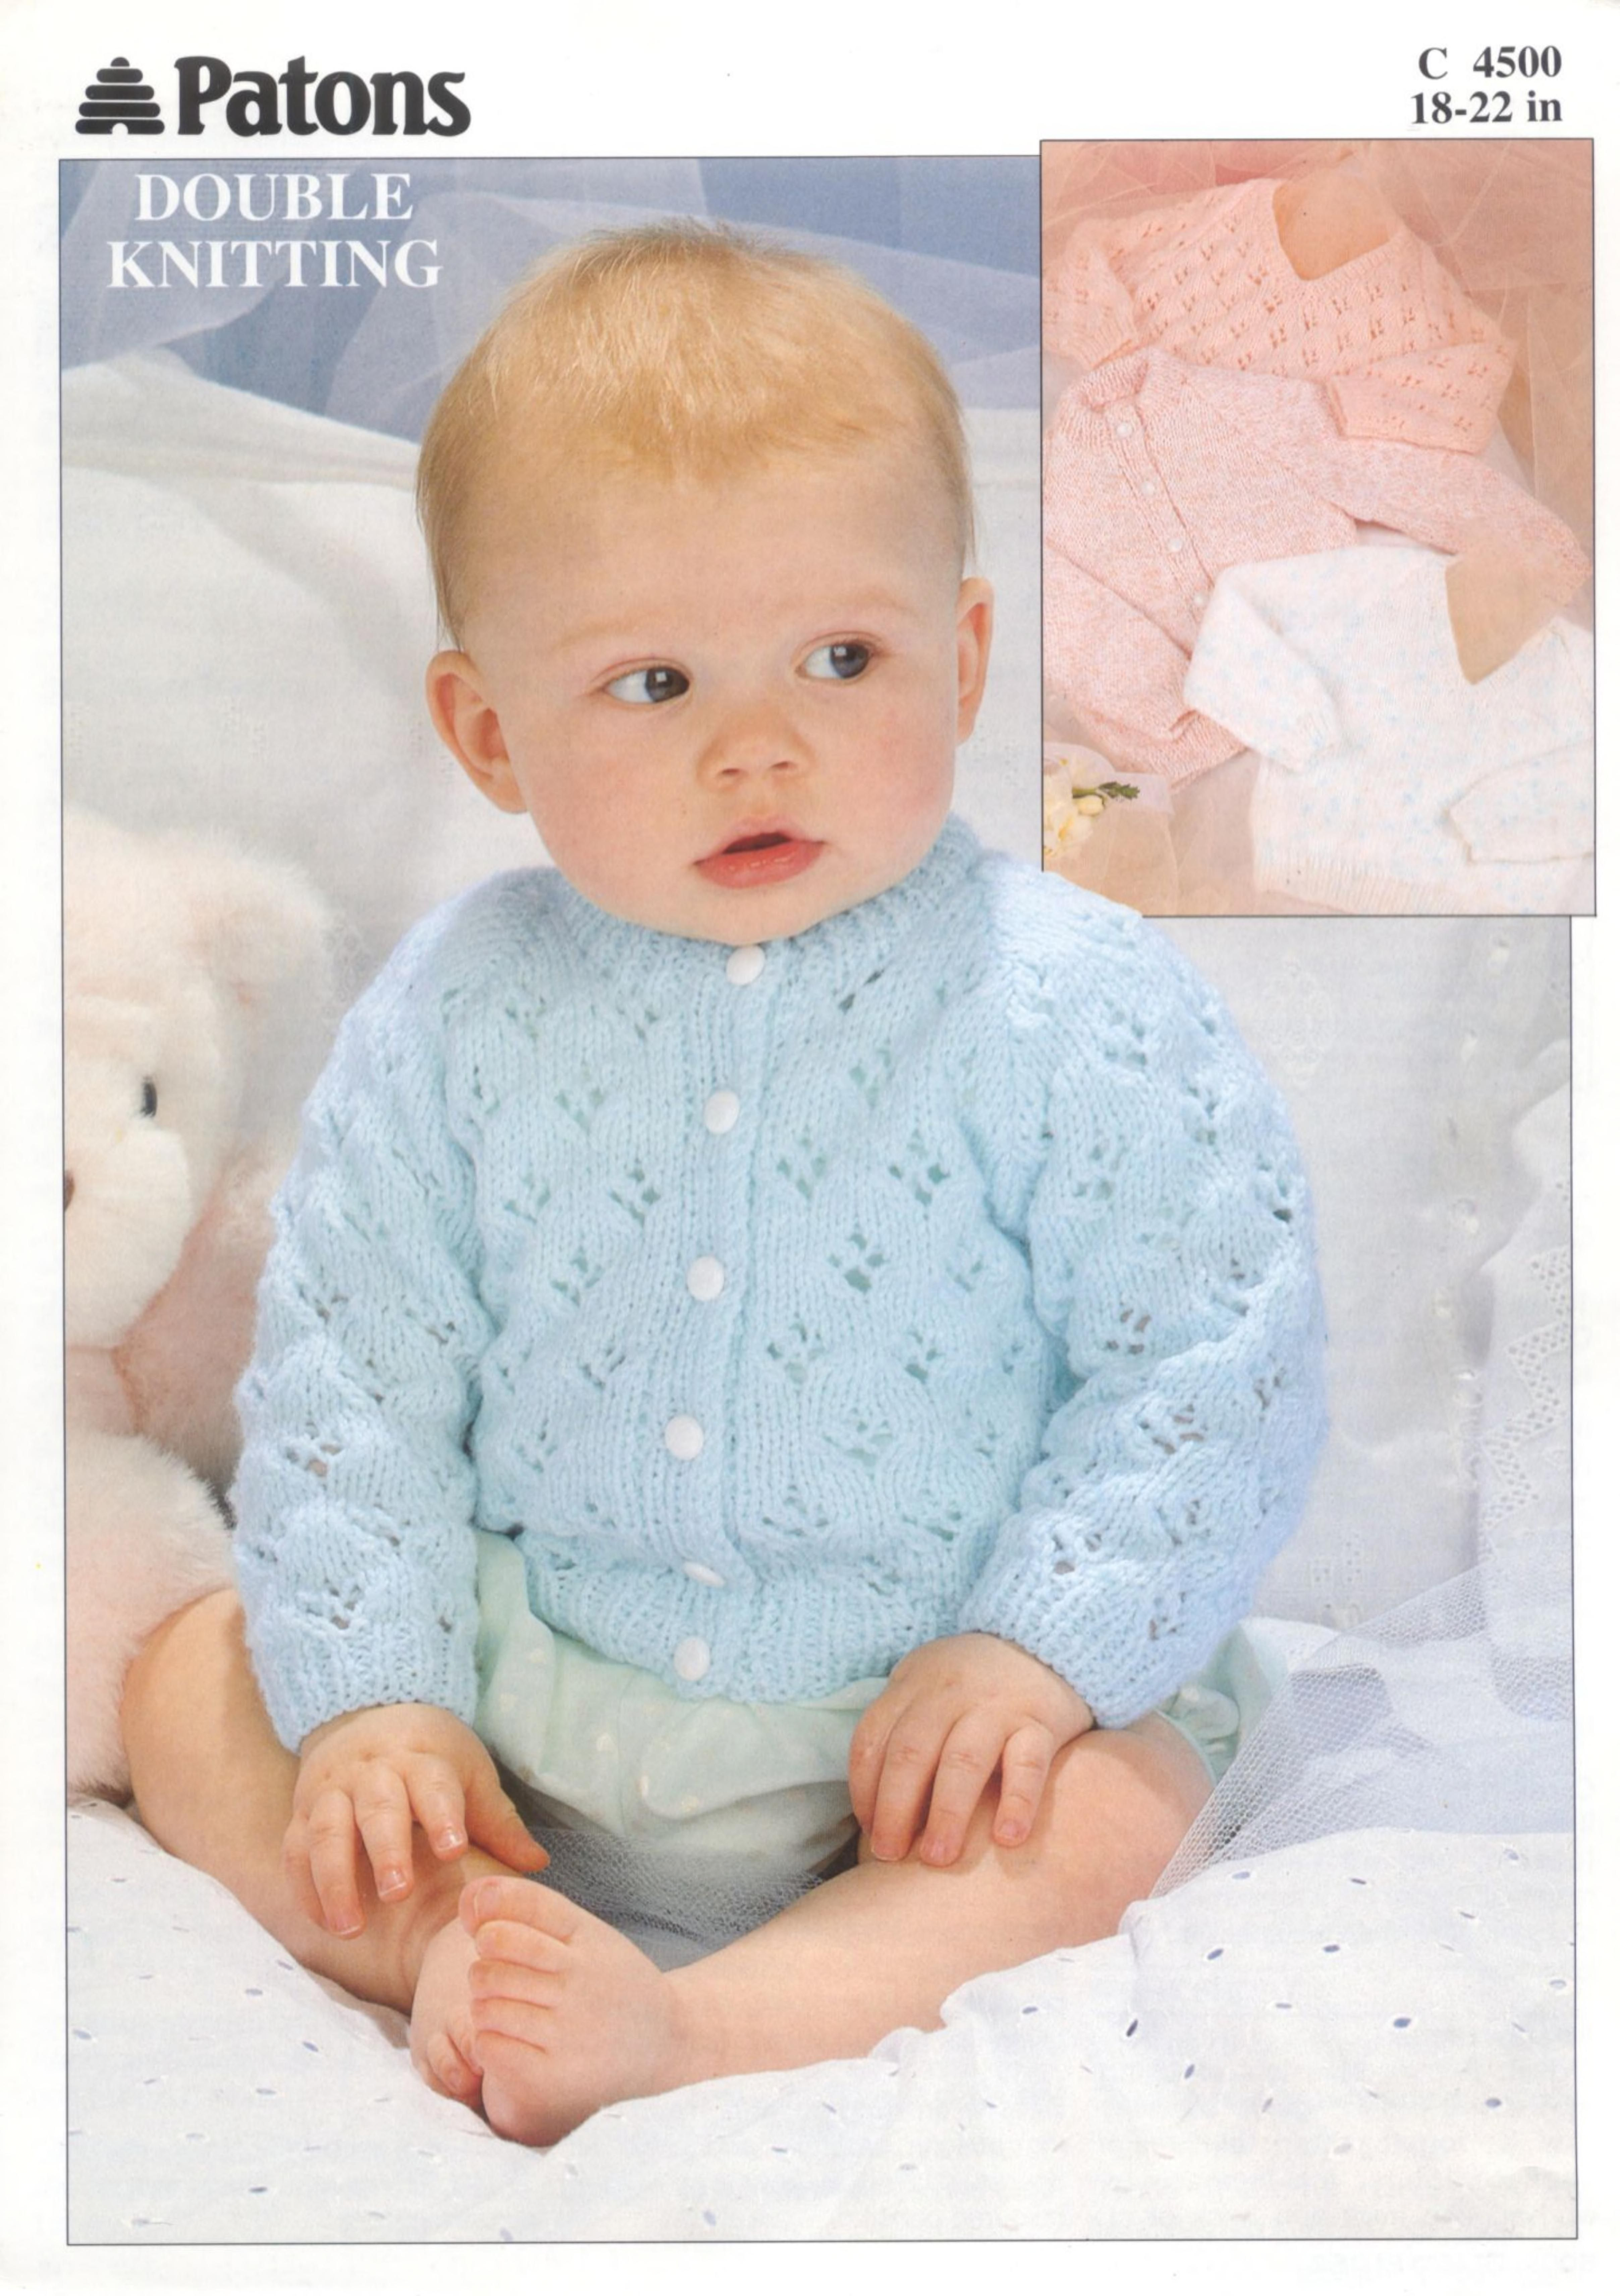 Patons 4500 sweaters and cardigans pinterest patons 4500 sweaters and cardigans baby patternsbaby knitting bankloansurffo Gallery